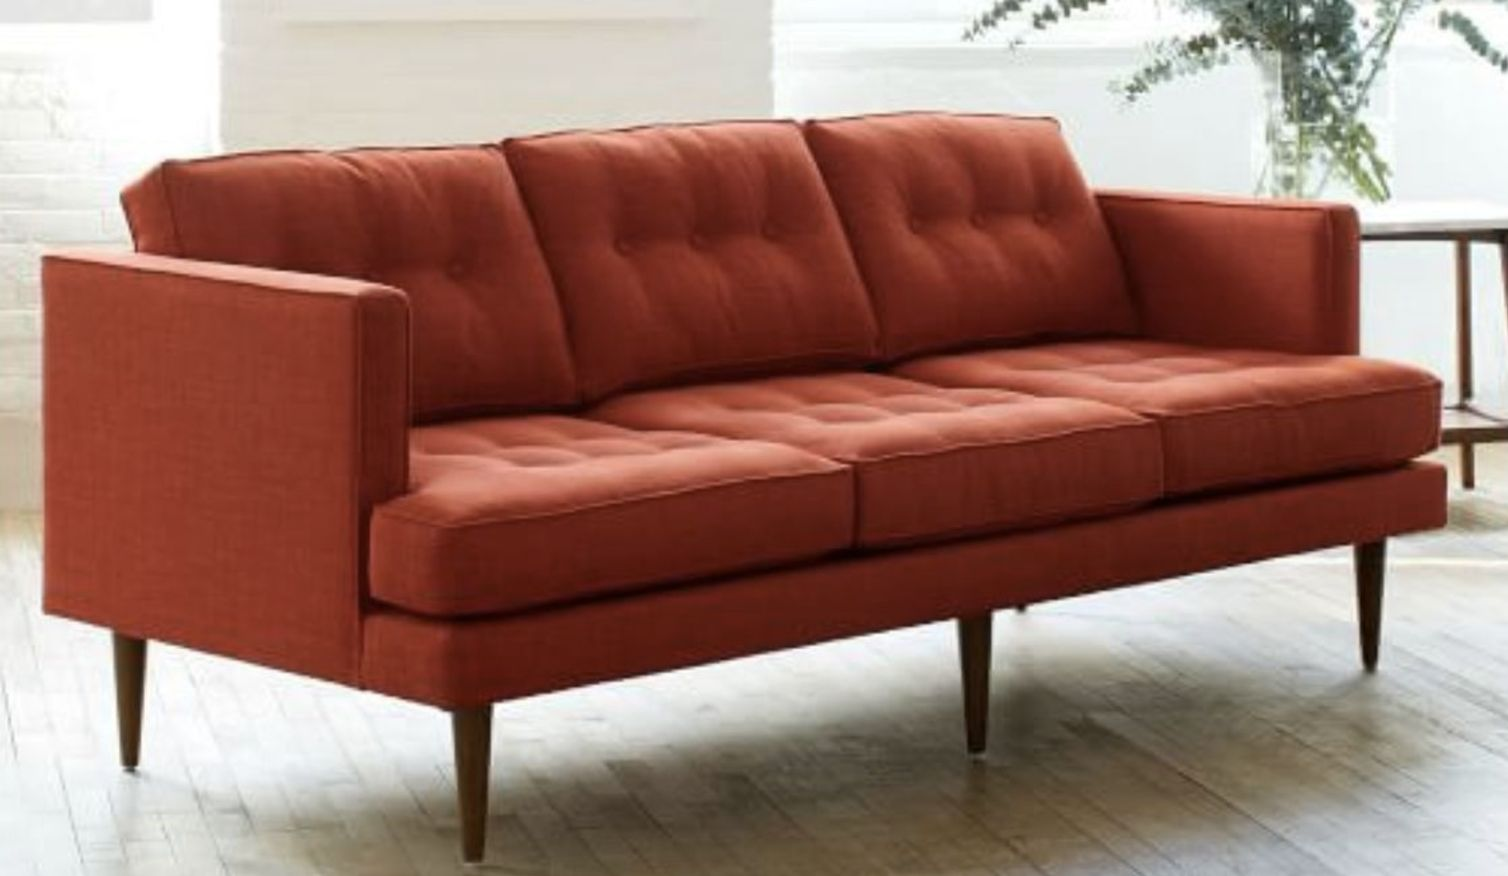 Couches Promotion A Writer Shamed This Couch So Hard West Elm Is Offering Refunds